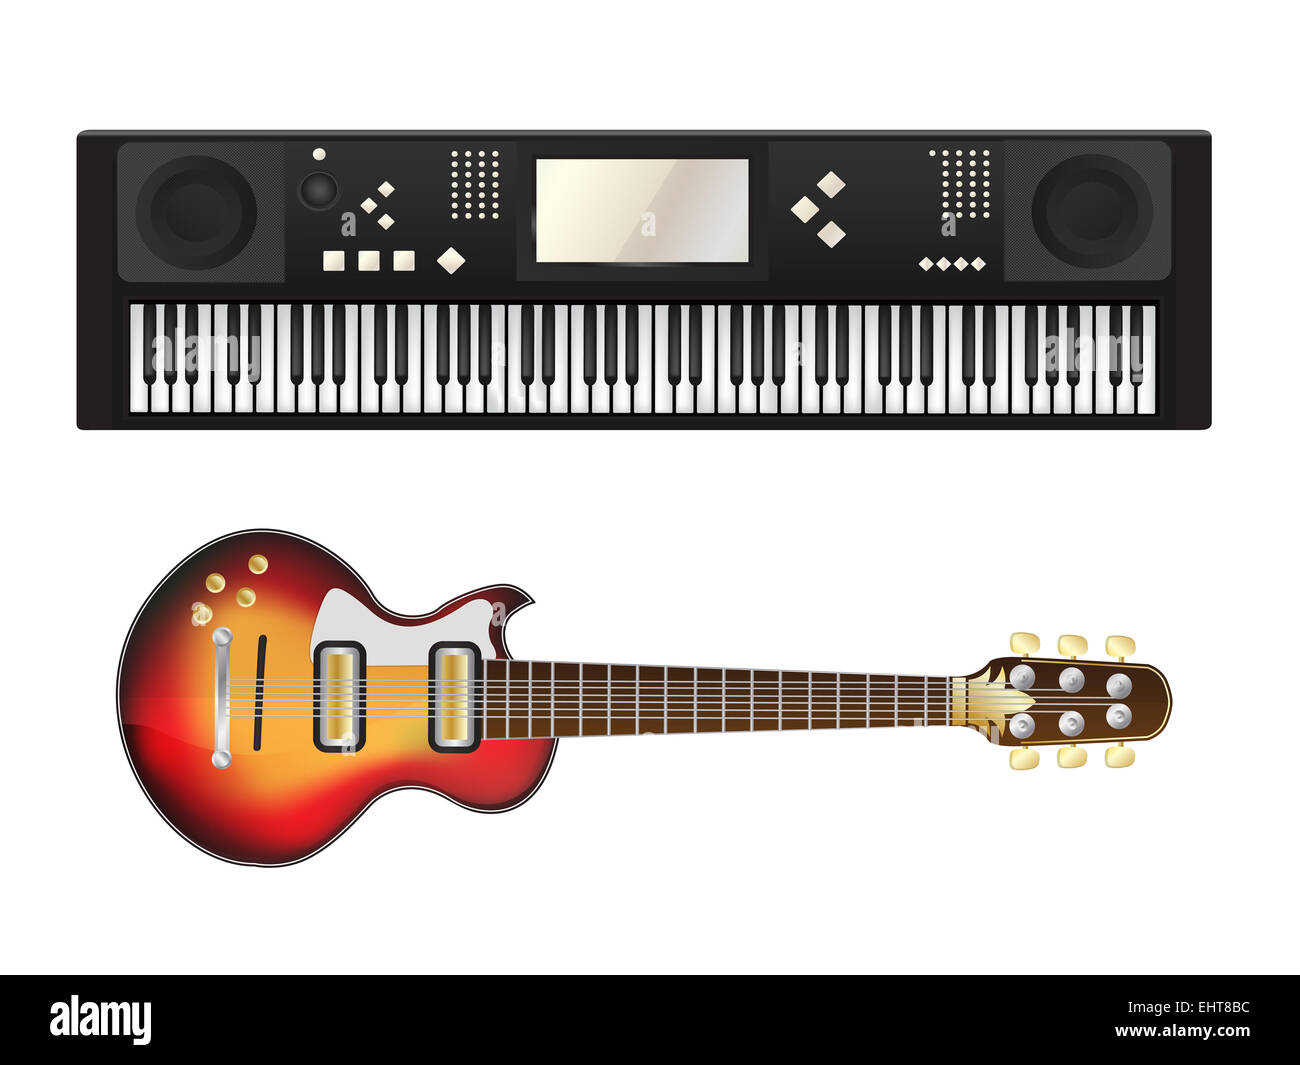 Electric guitar and synthesizer - Stock Image